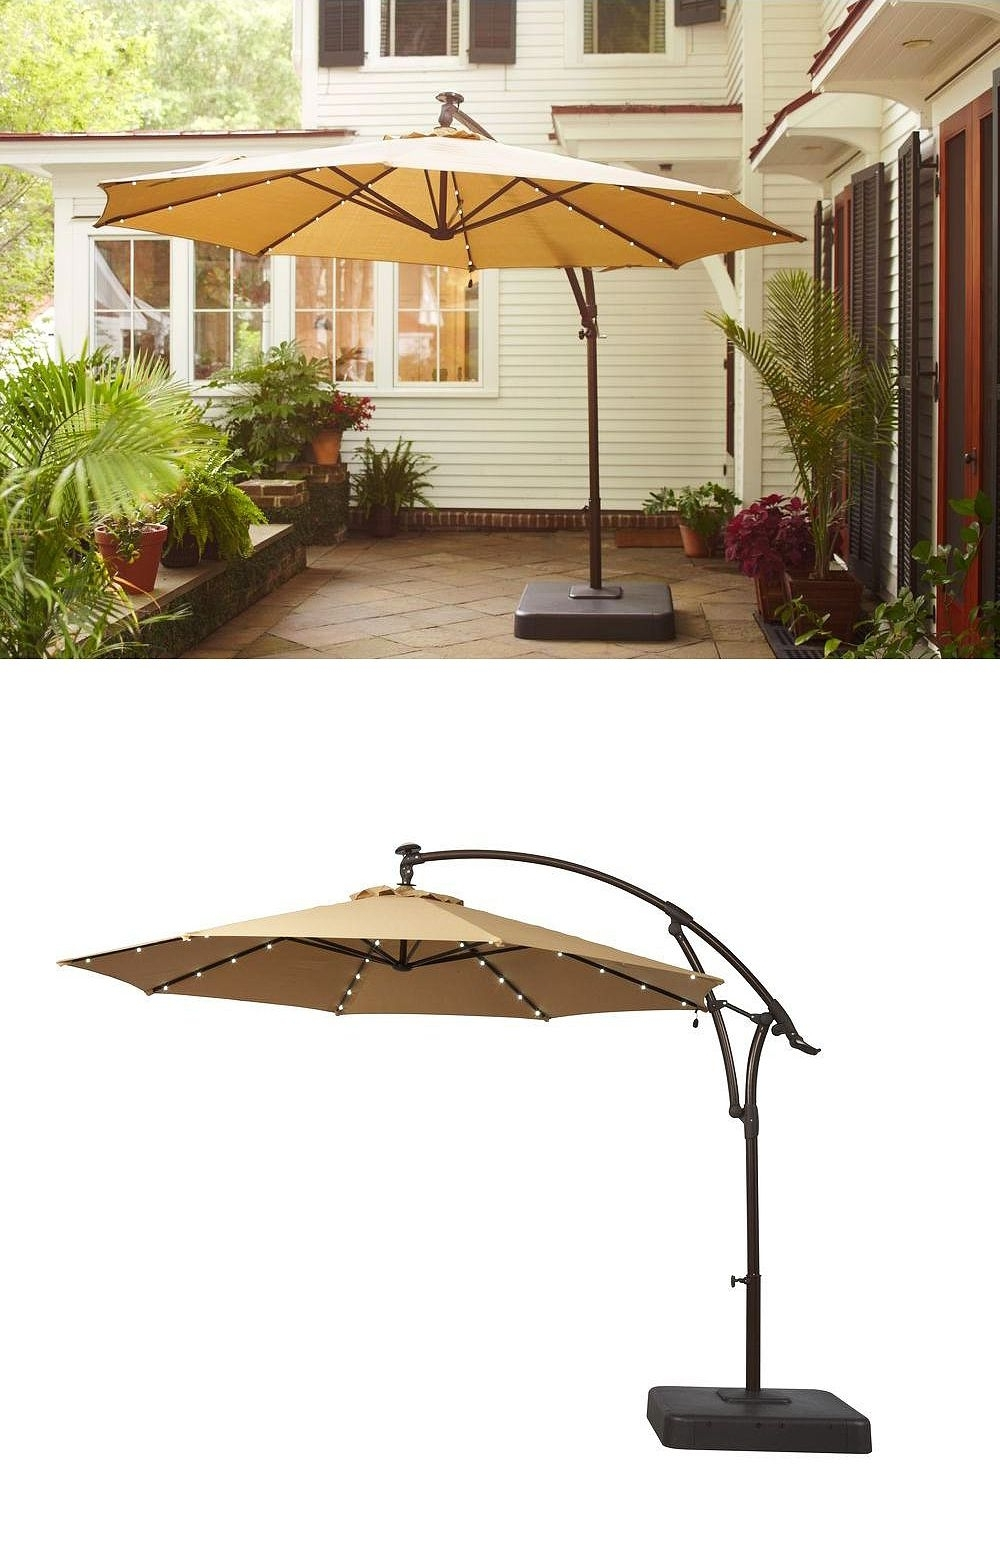 Sunbrella Patio Umbrellas With Solar Lights Regarding Newest There's Something Special About This Patio Umbrella: It Has Small (View 15 of 20)